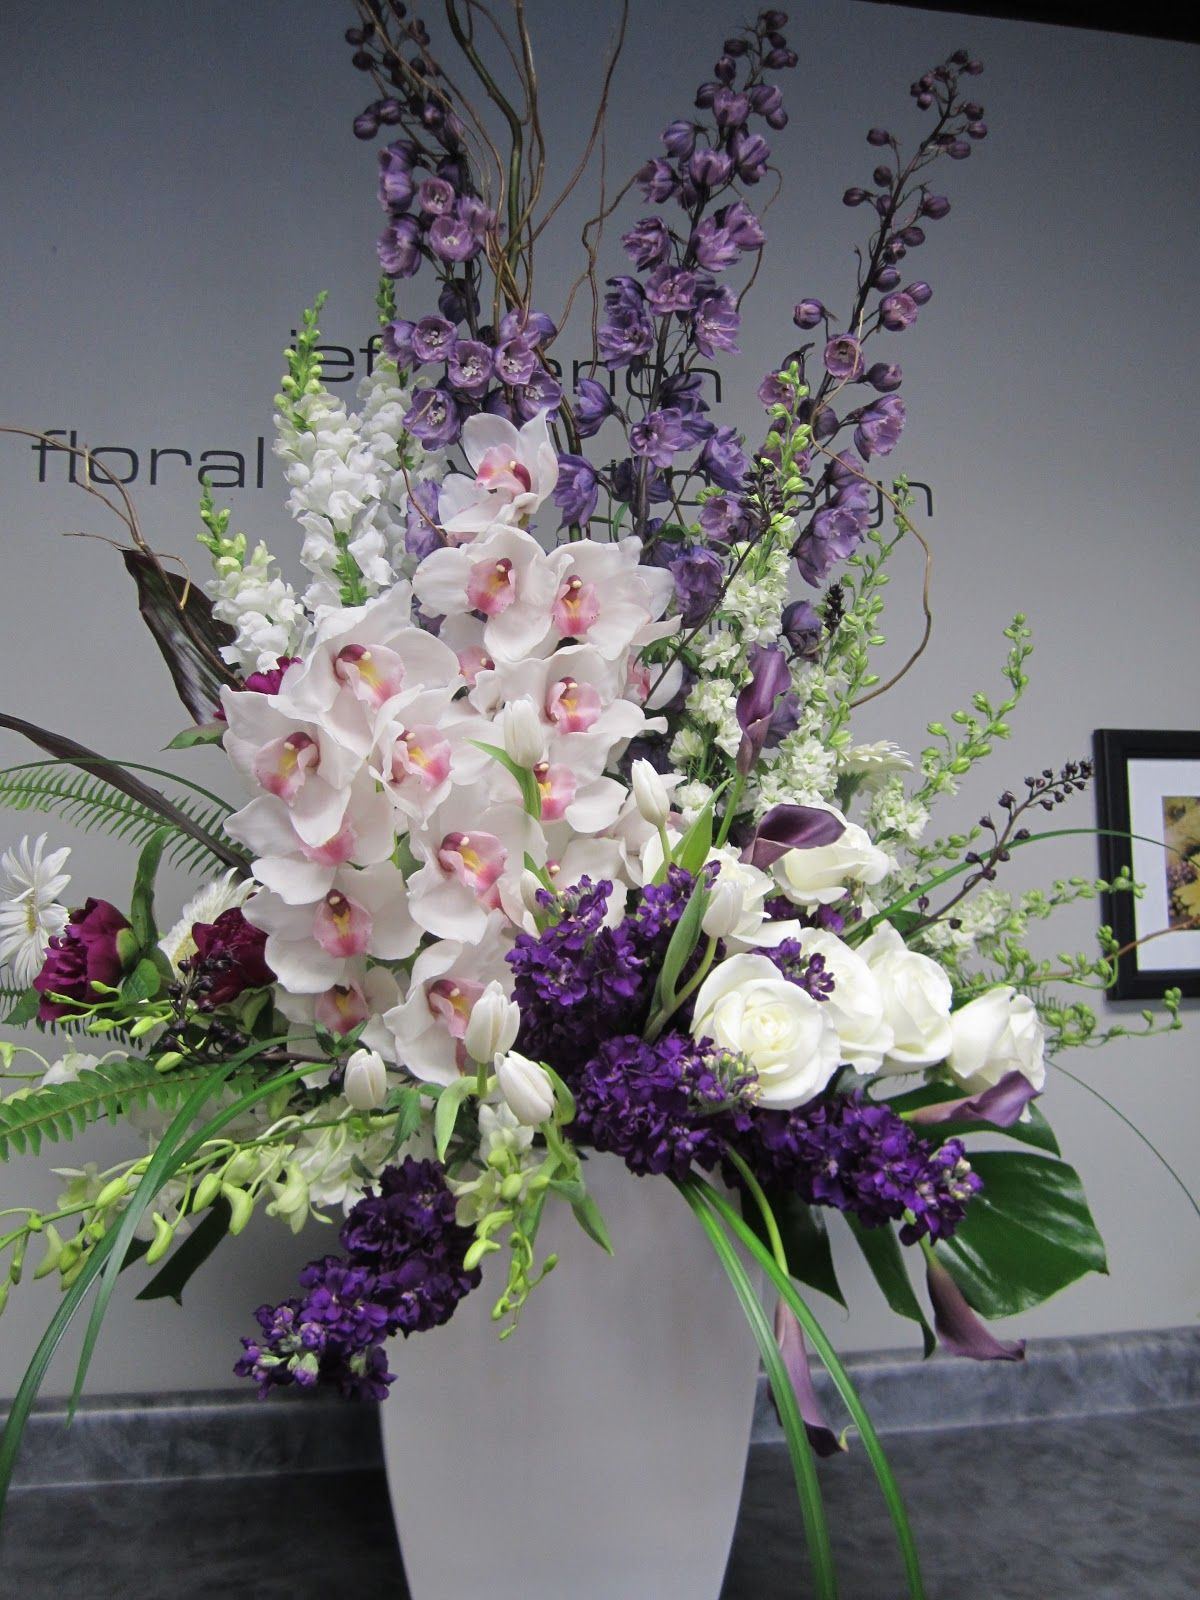 jeff french floral & event design funeral flowers floral designs